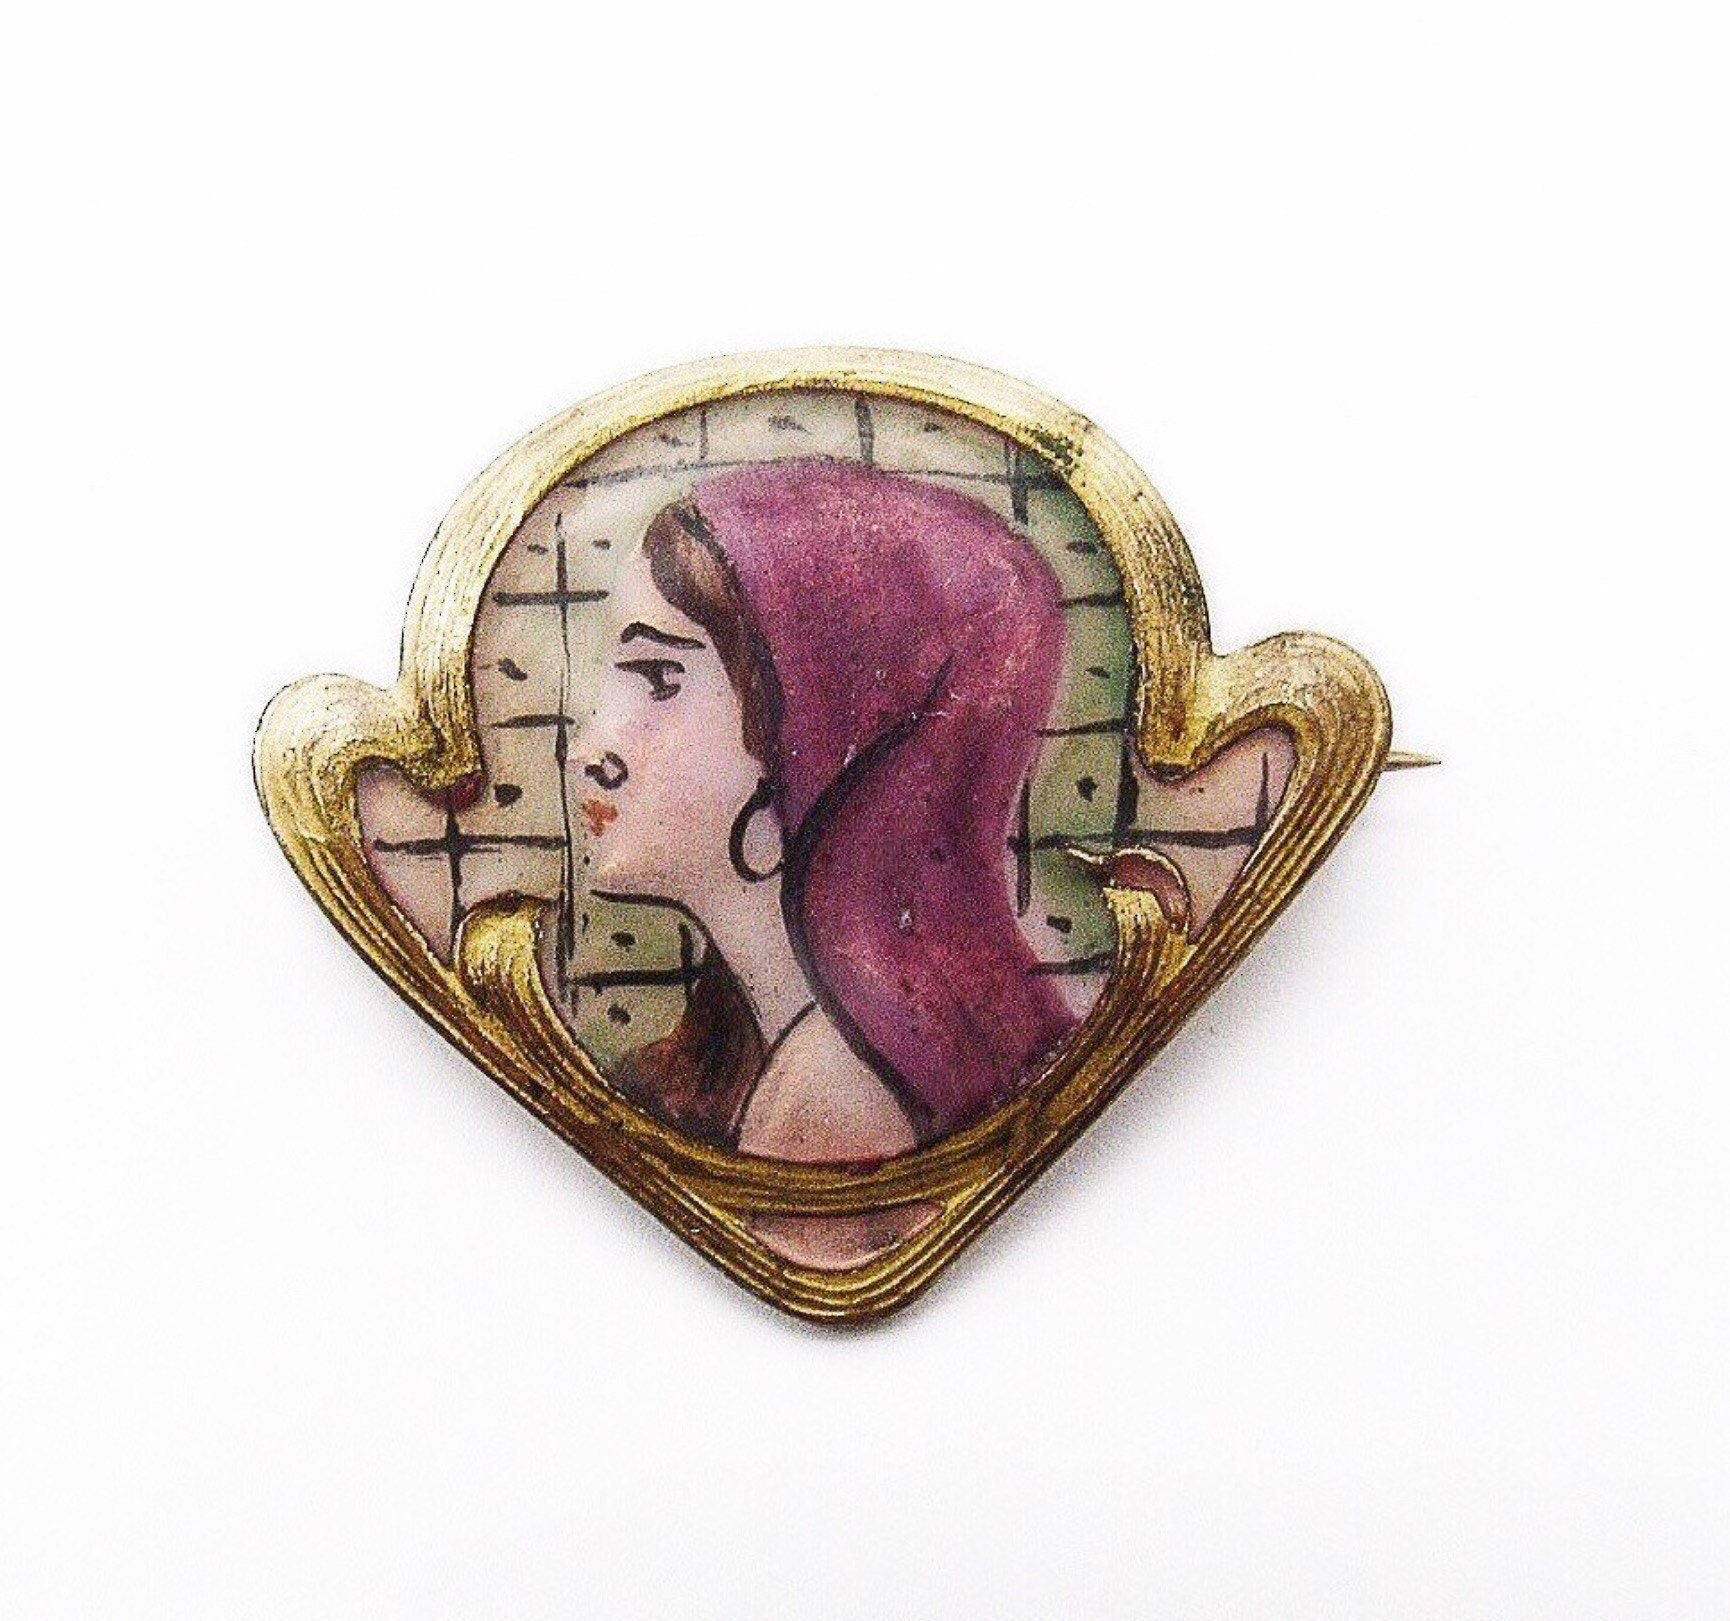 Art Nouveau Brooch Rare Scrolled Gold Wash Hand Painted